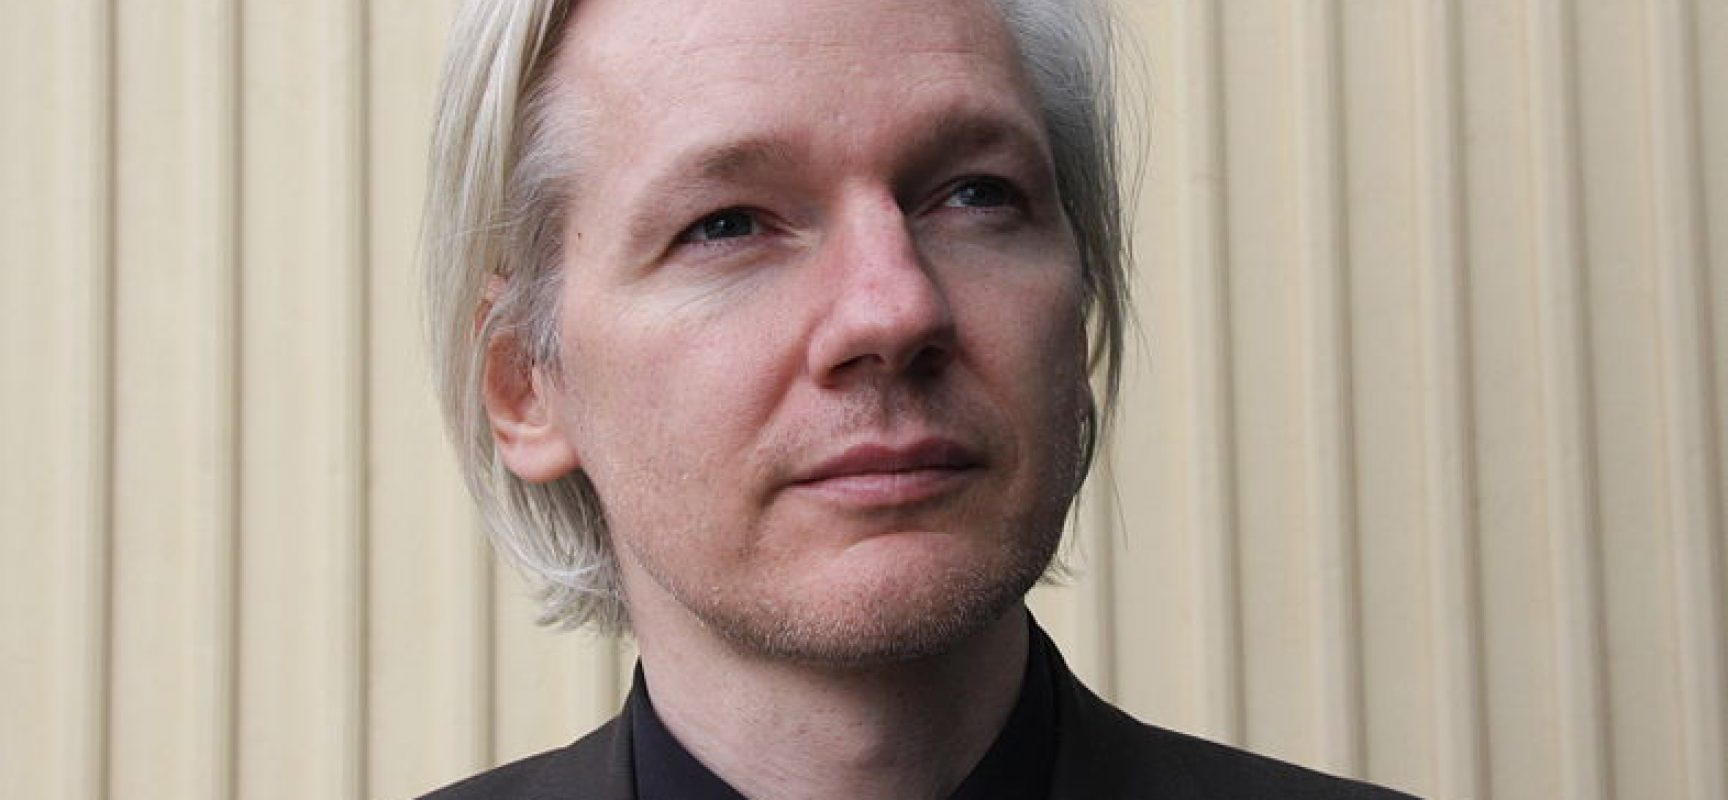 Julian Assange linked to Russian intelligence. Ecuadorian government knew about his meddling in US presidential elections